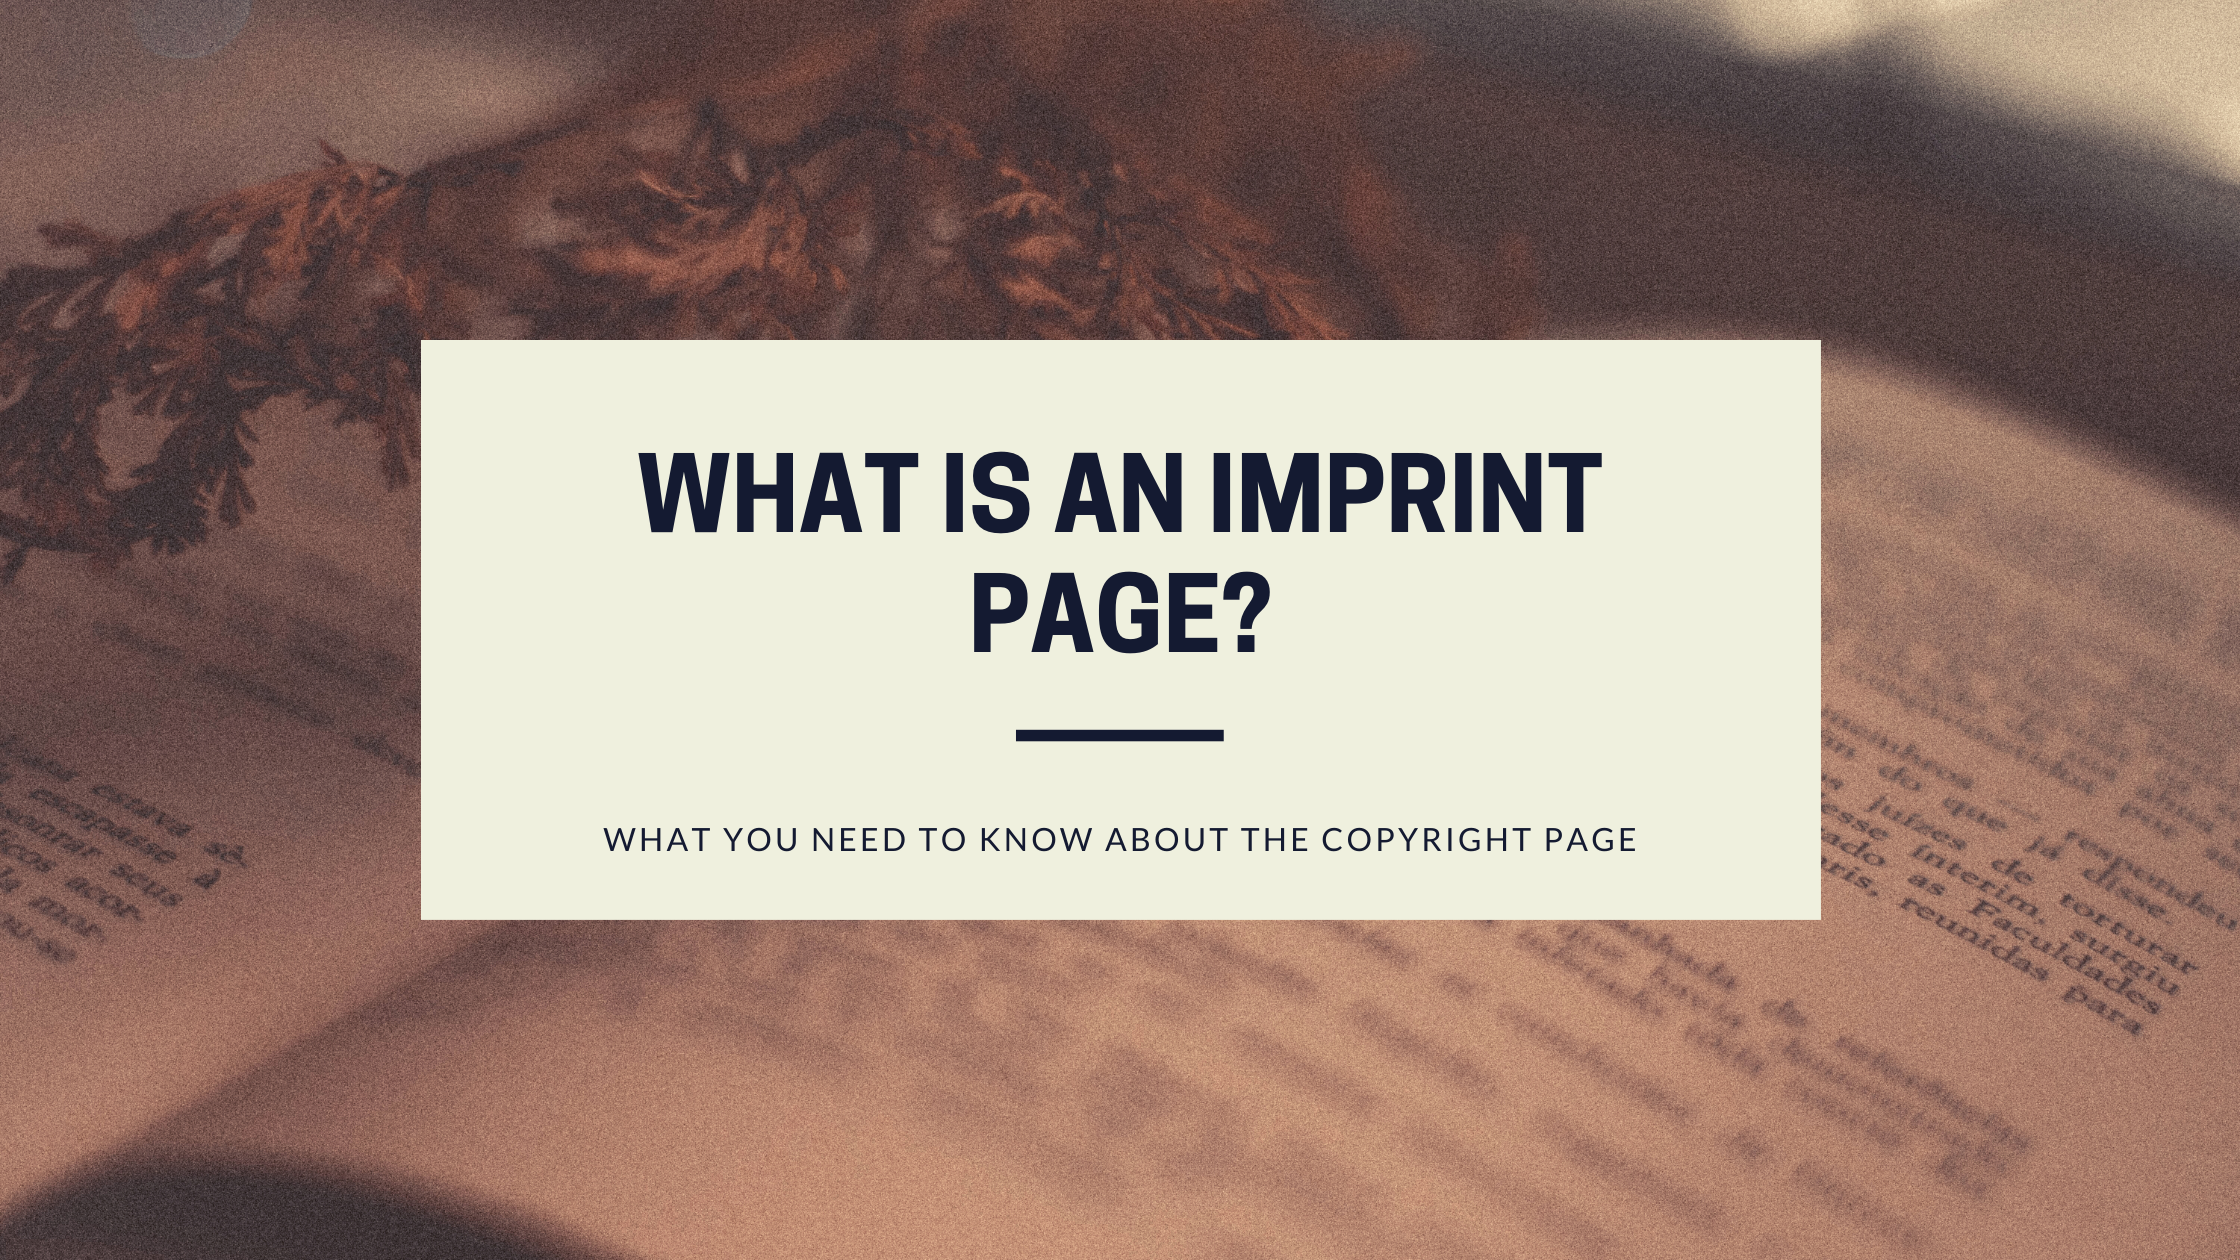 What is an imprint page?